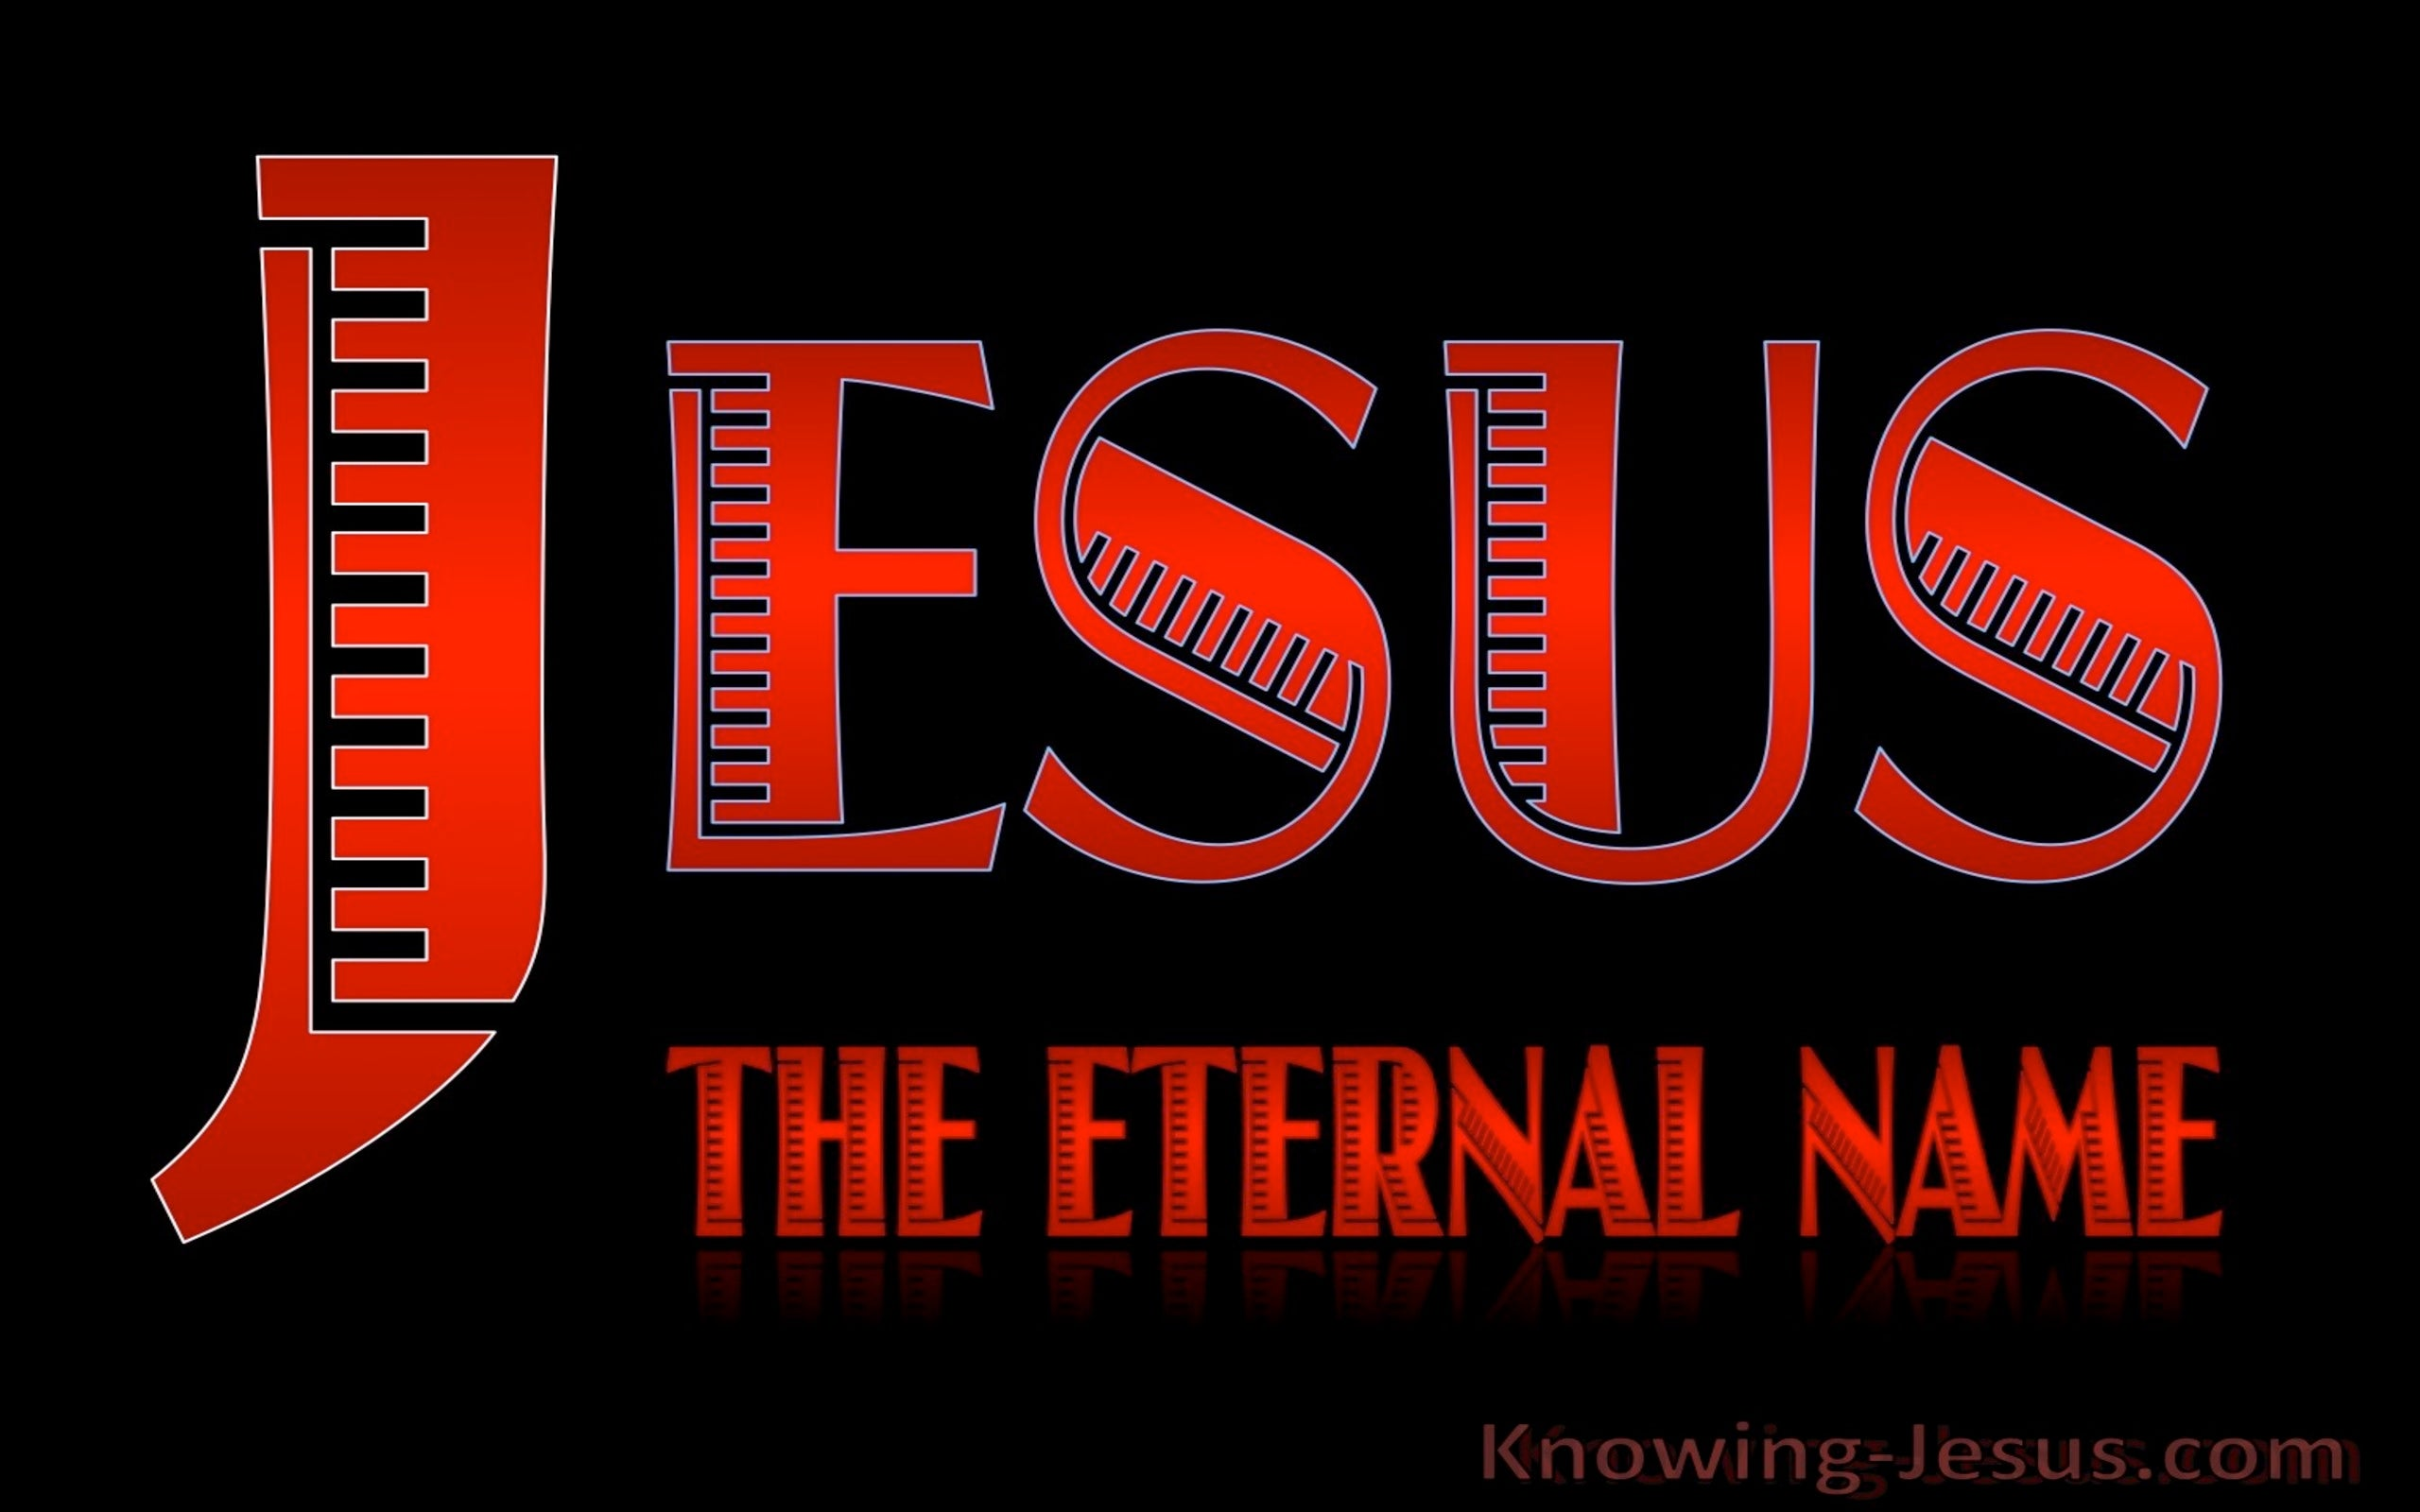 JESUS - The Eternal Name (red)